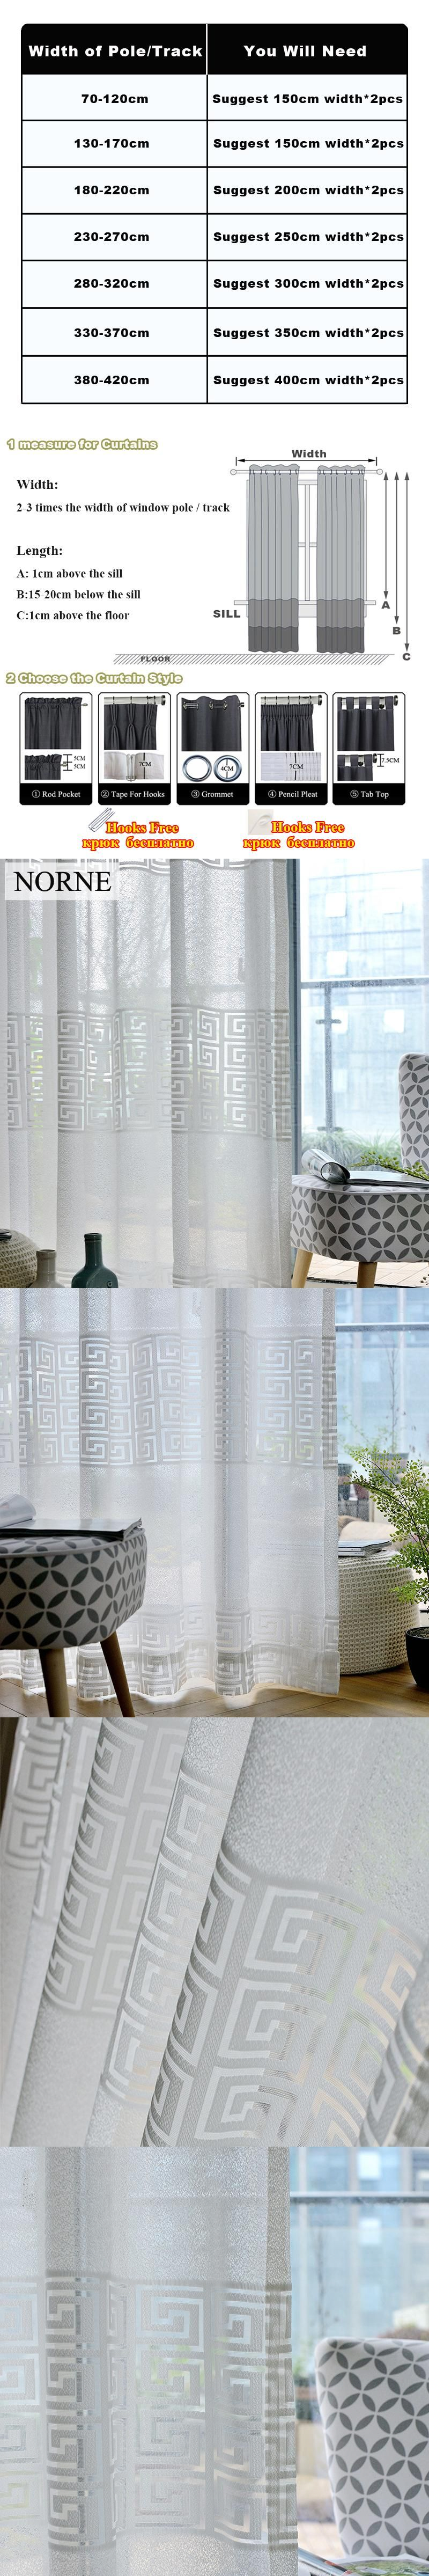 3 panel kitchen window  norne decorative semi white lace sheer curtain for window dinning